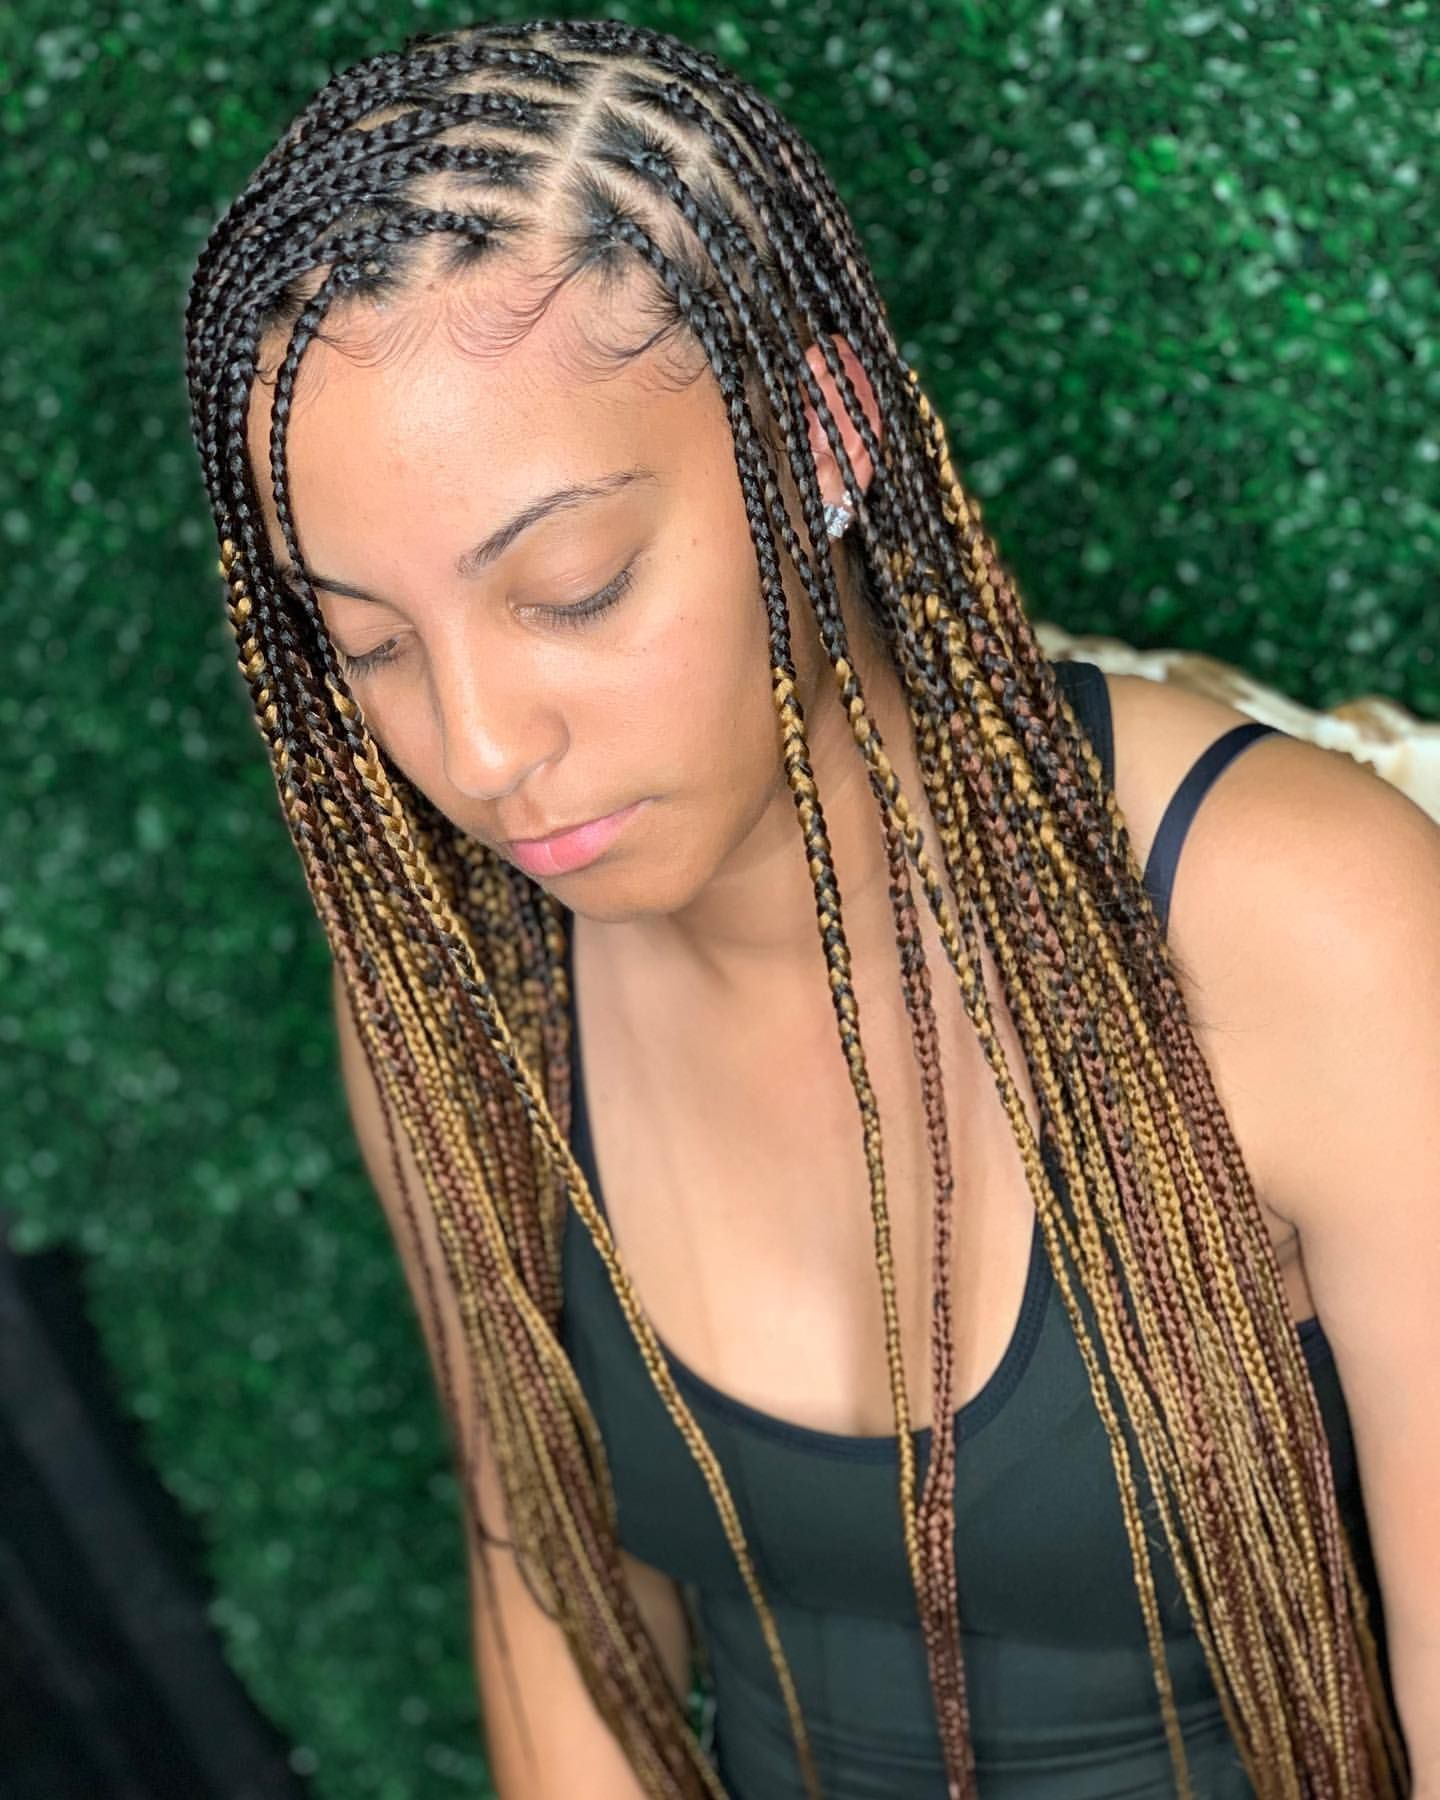 Knotless What Does Your Braider Knotless Braids Look Like Take Advantage Of This Special Ladies Hair Included Good De Hair Braider Twist Braids Hair